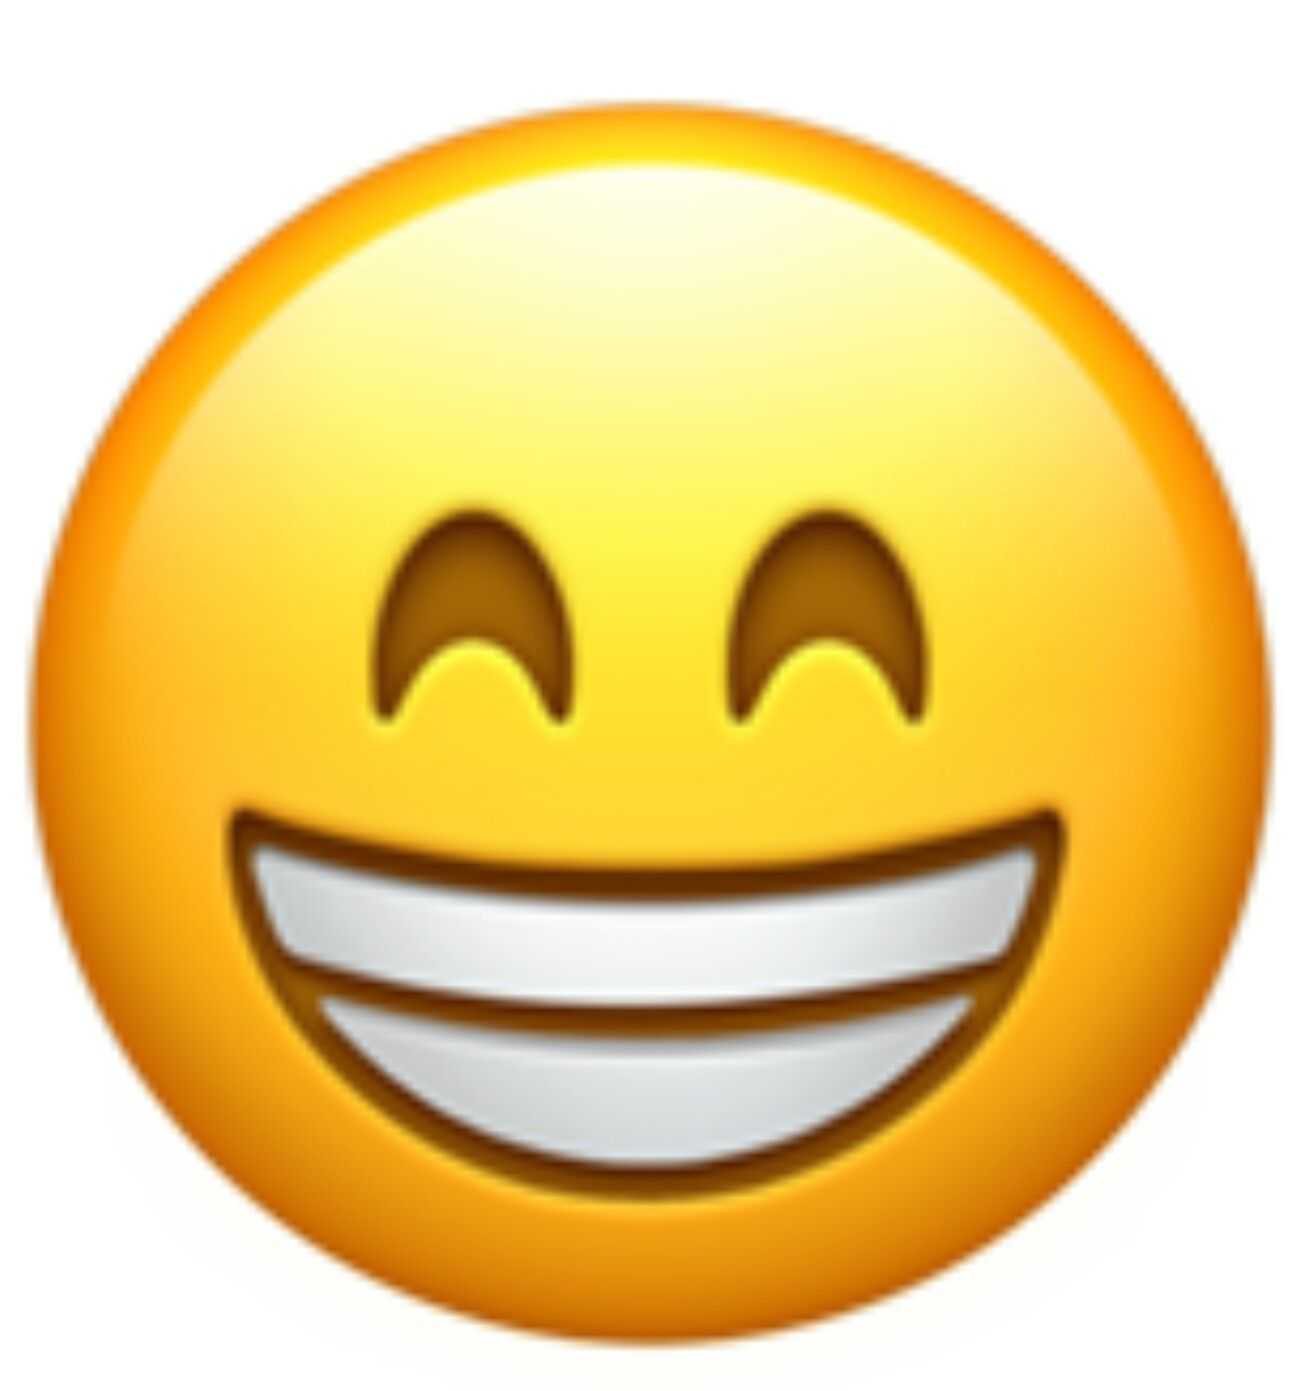 a version of the grinning face showing smiling eyes this